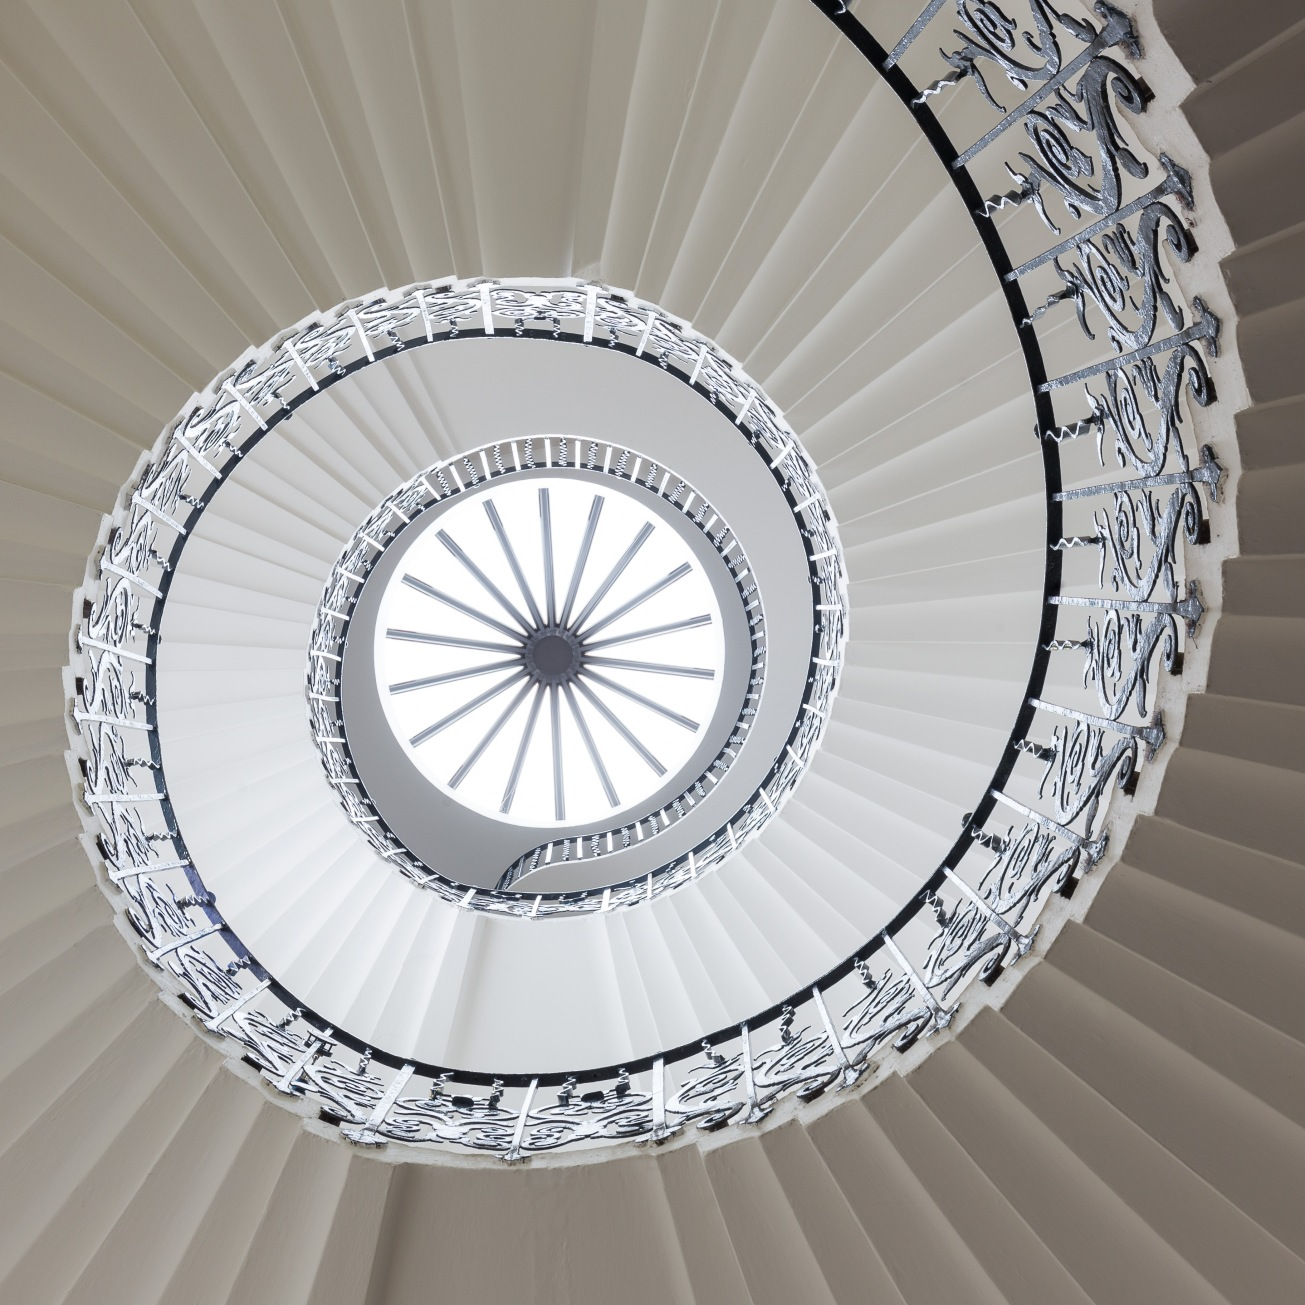 The Tulip Stairs, Queen's House, Greenwich